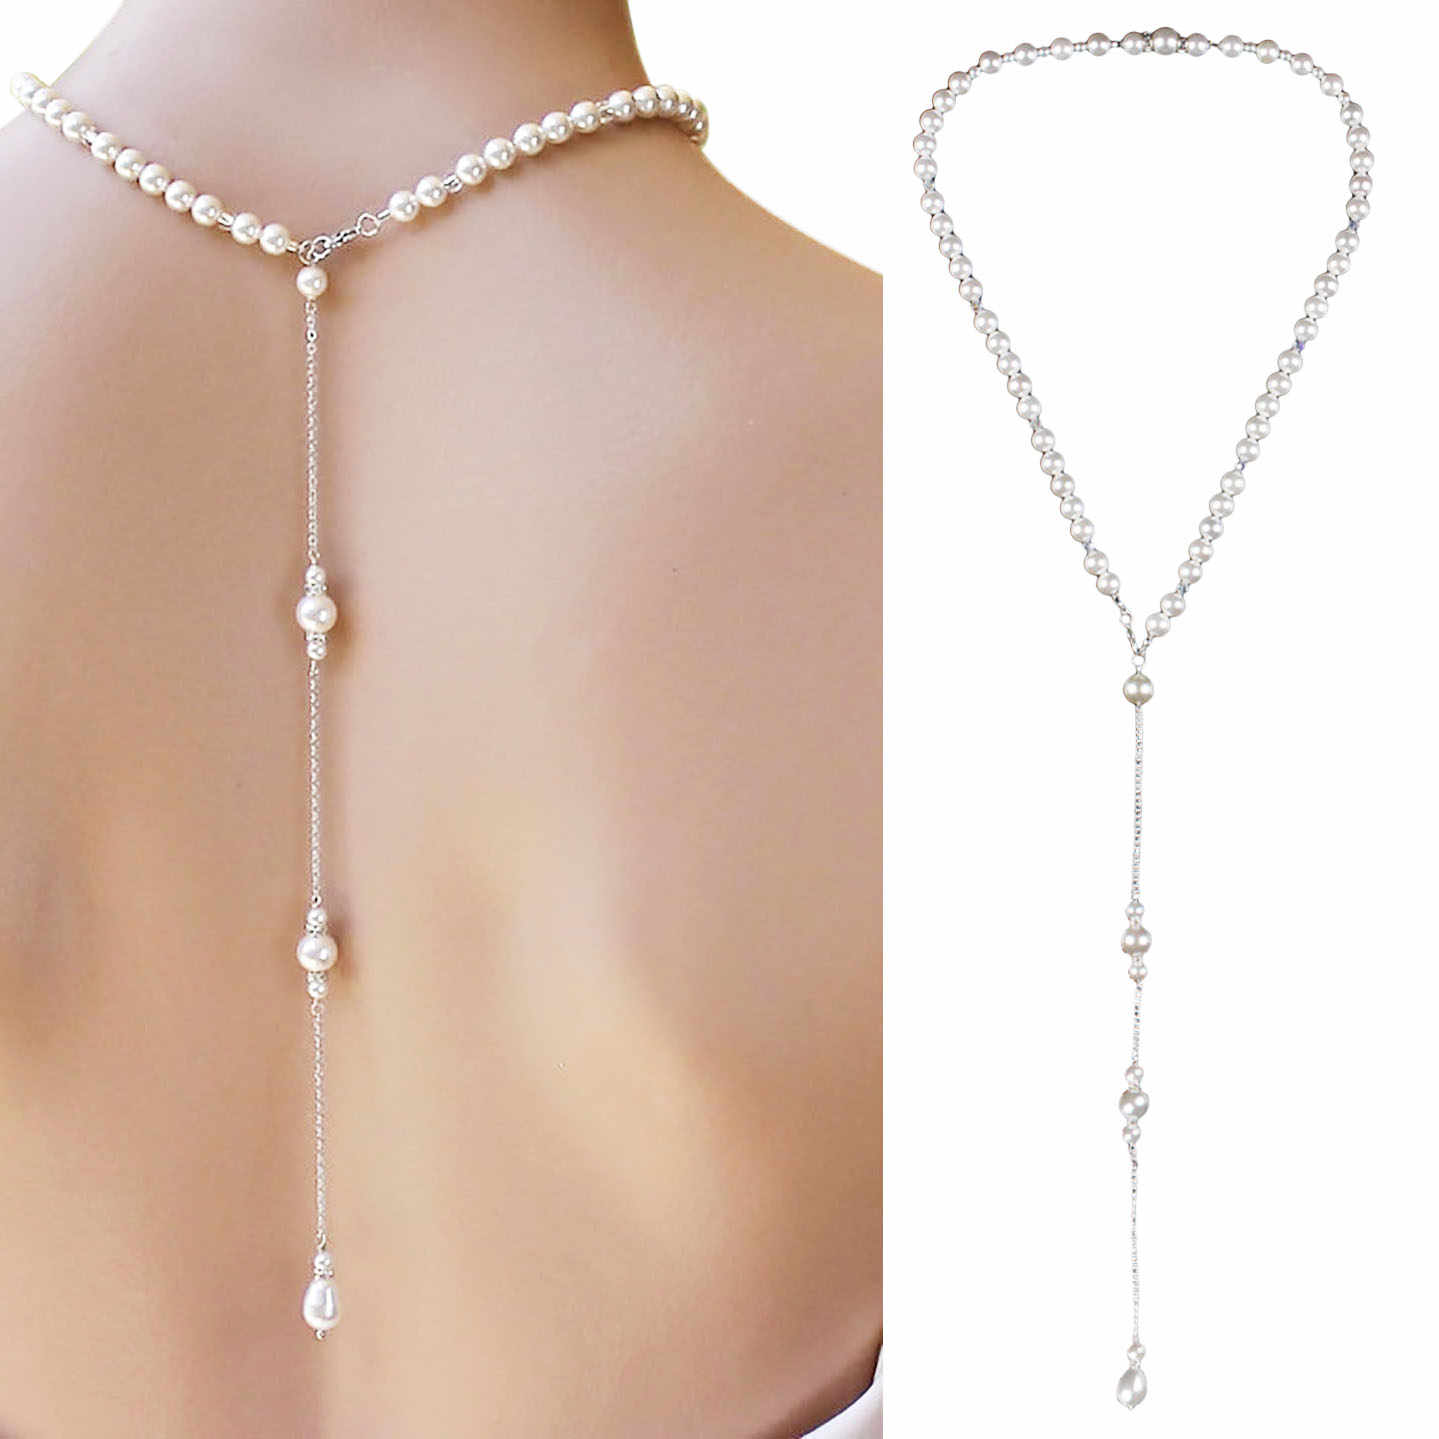 2019 New Simulated Pearl Backdrop Necklaces Back Chain Jewelry For Women Party Wedding Backless Dress Accessories